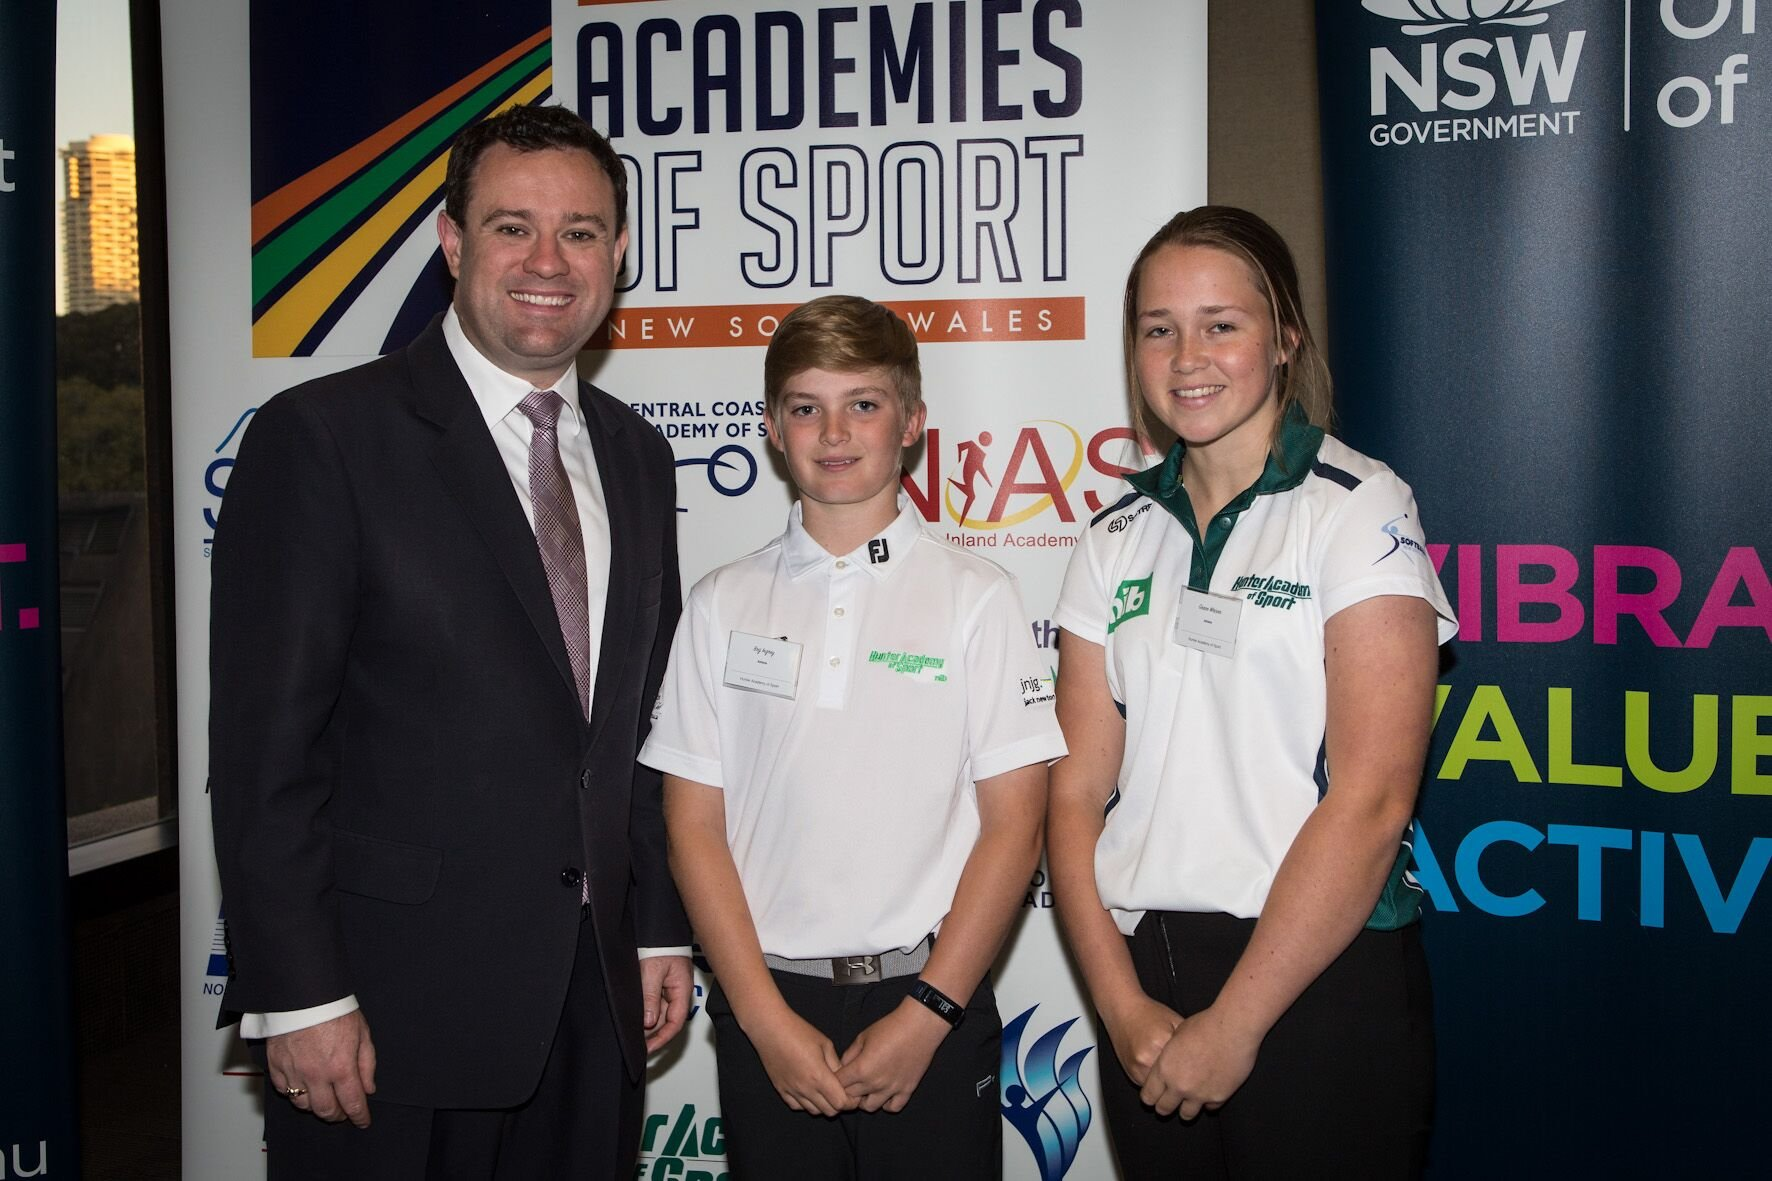 On Tuesday 19 September, two HAS athletes made their way to NSW Parliament House for a leadership forum followed by a Parliamentary Reception.